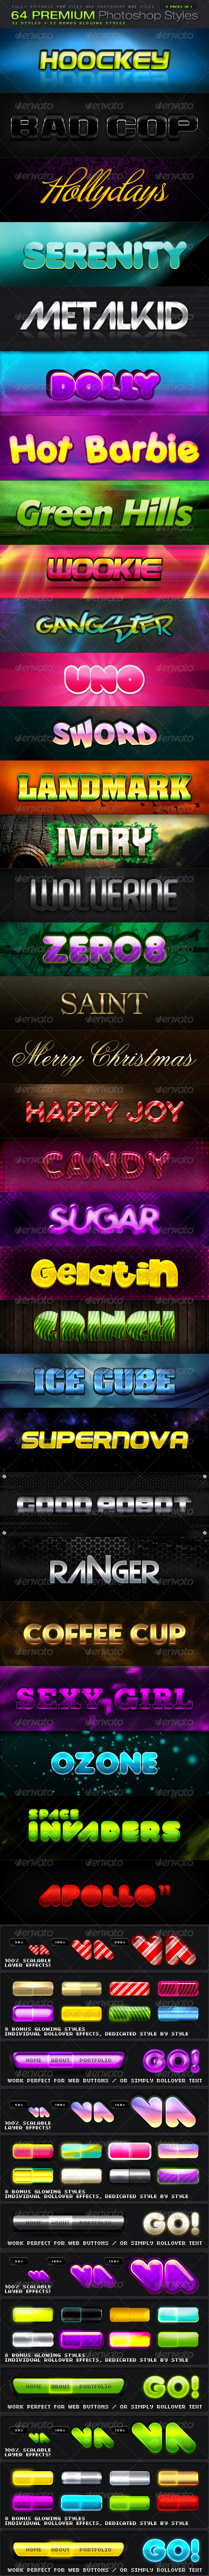 [BUNDLE] 64 PREMIUM Photoshop Styles - Text Effects Styles